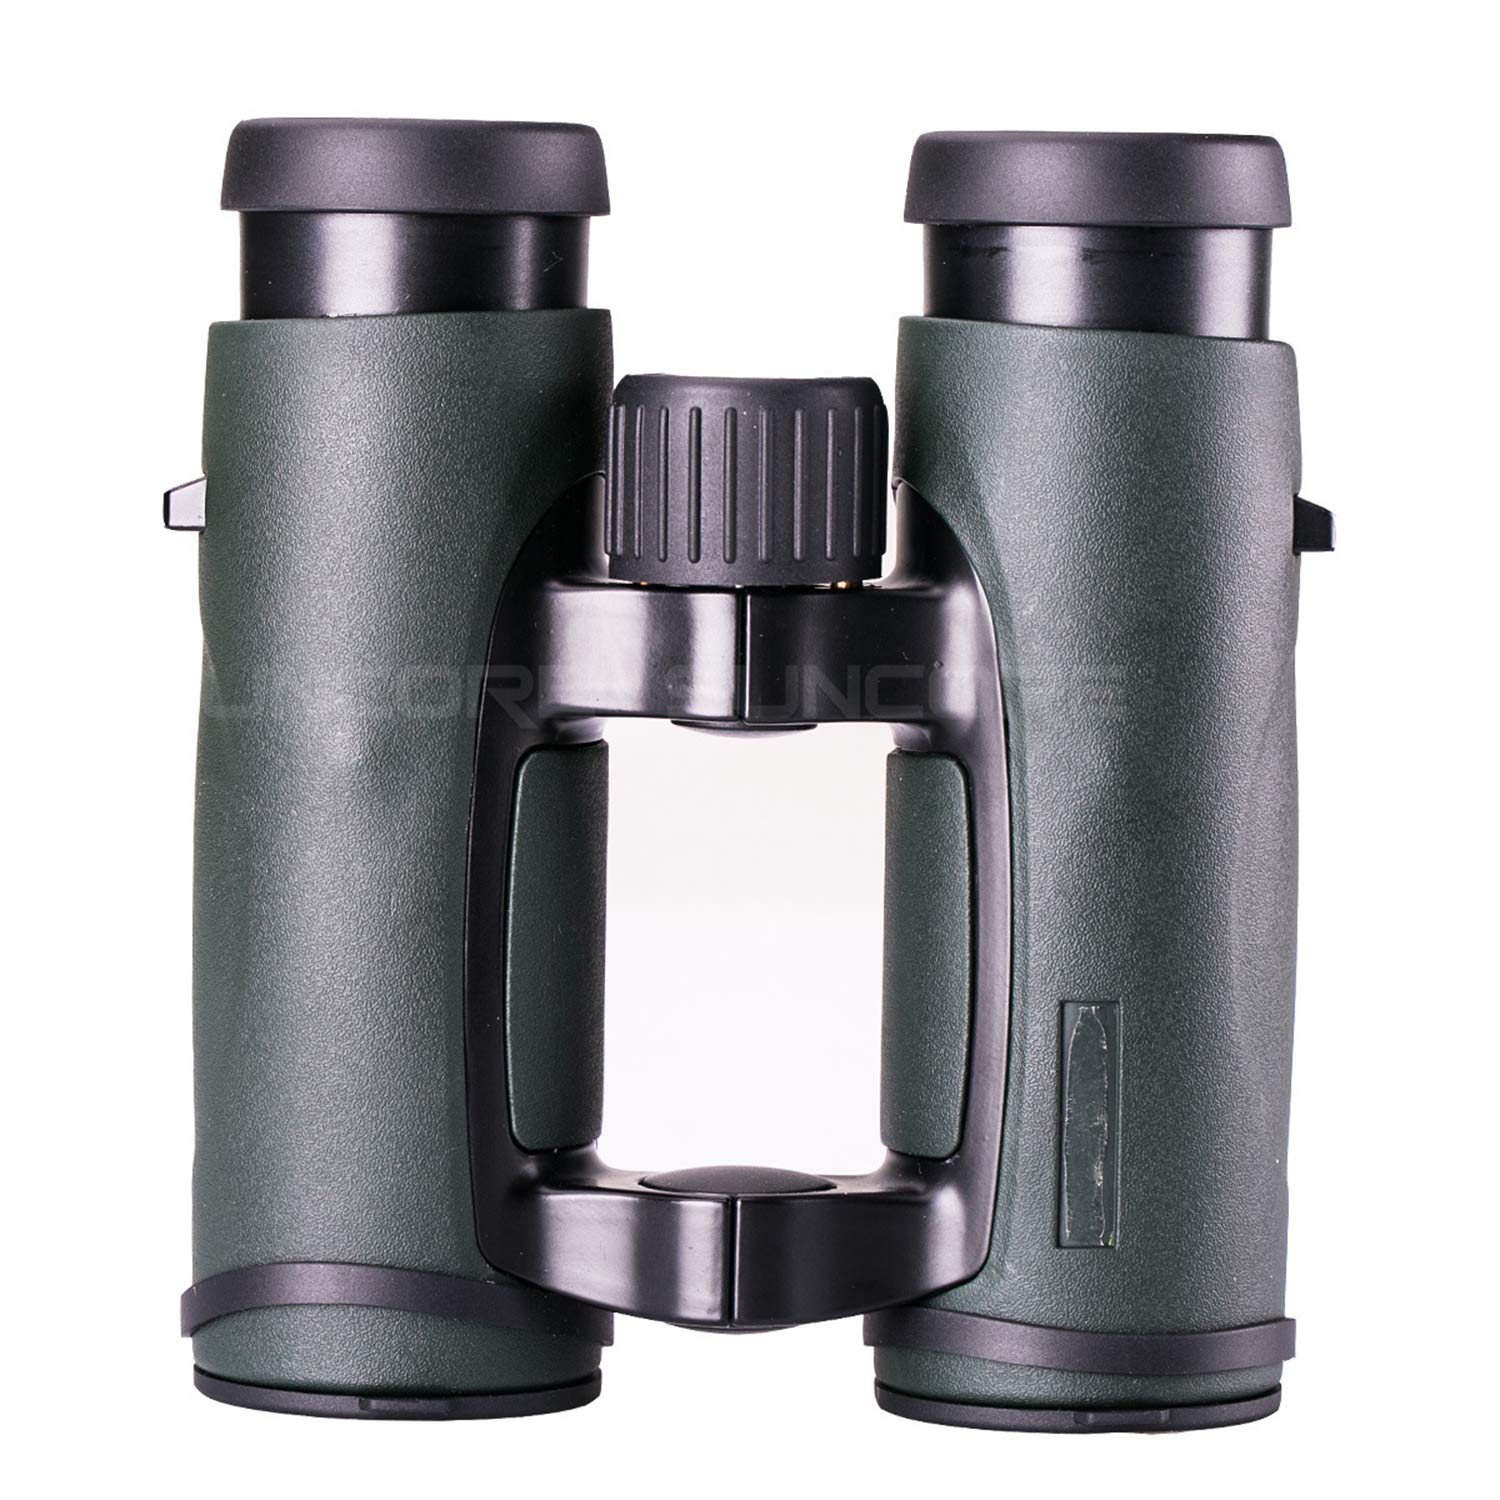 LNYF-OV Binoculars Optics, HD, Night Vision Waterproof,Adults, Best Choice for Travelling, Hunting, Hiking, Sports and Outdoor Activities,10x32 by LNYF-OV